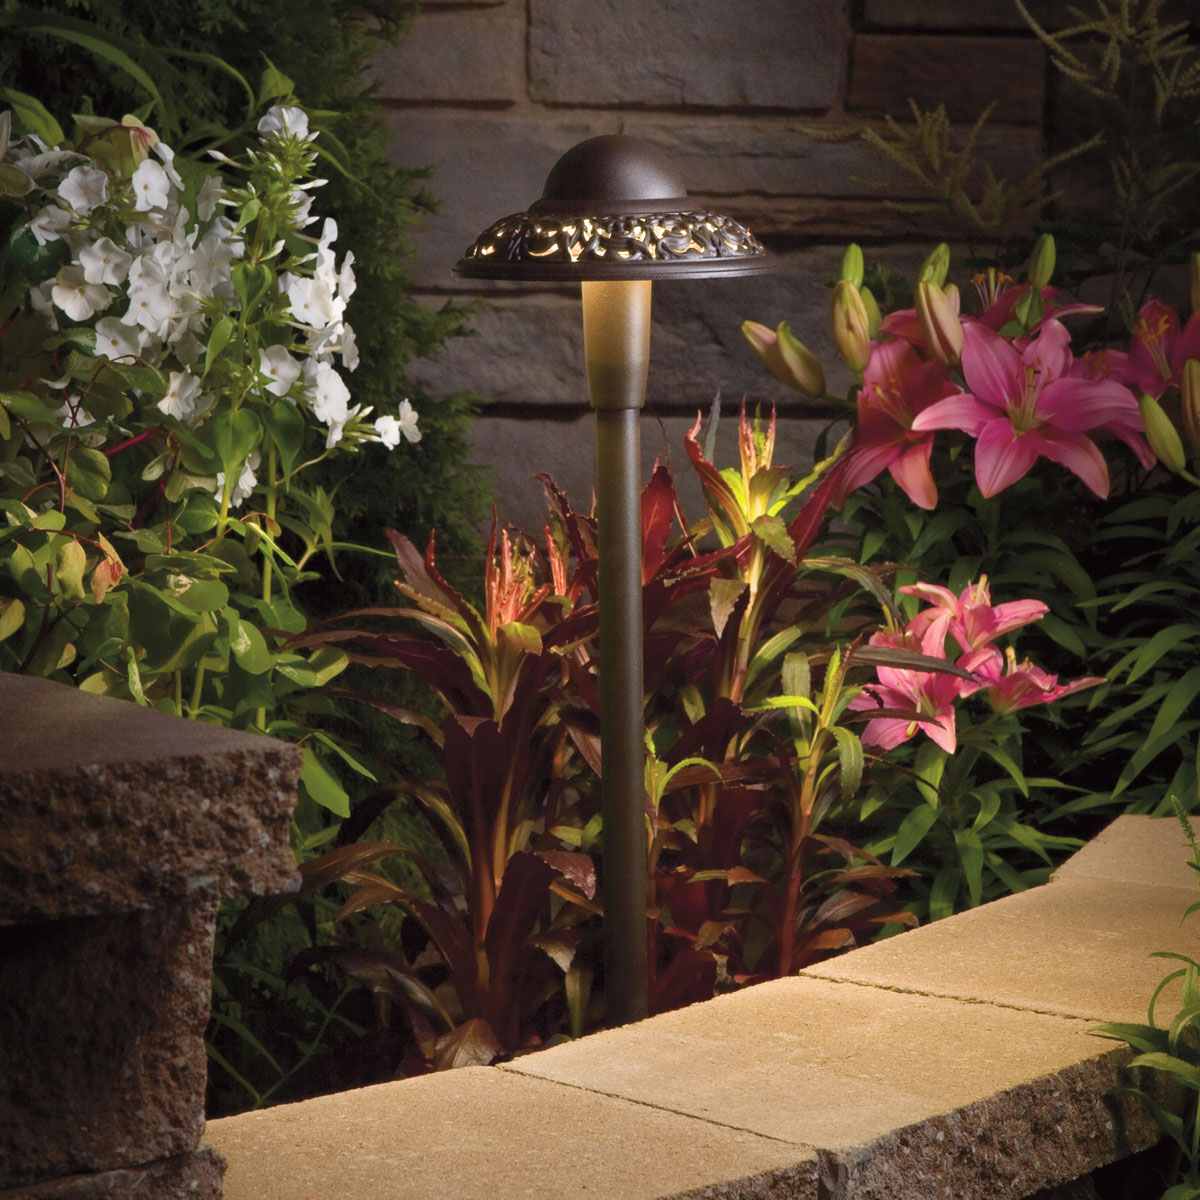 EXTERIOR LIGHTING & Prou0027s Touch Landscaping u2013 Complete Landscape Design and ... azcodes.com